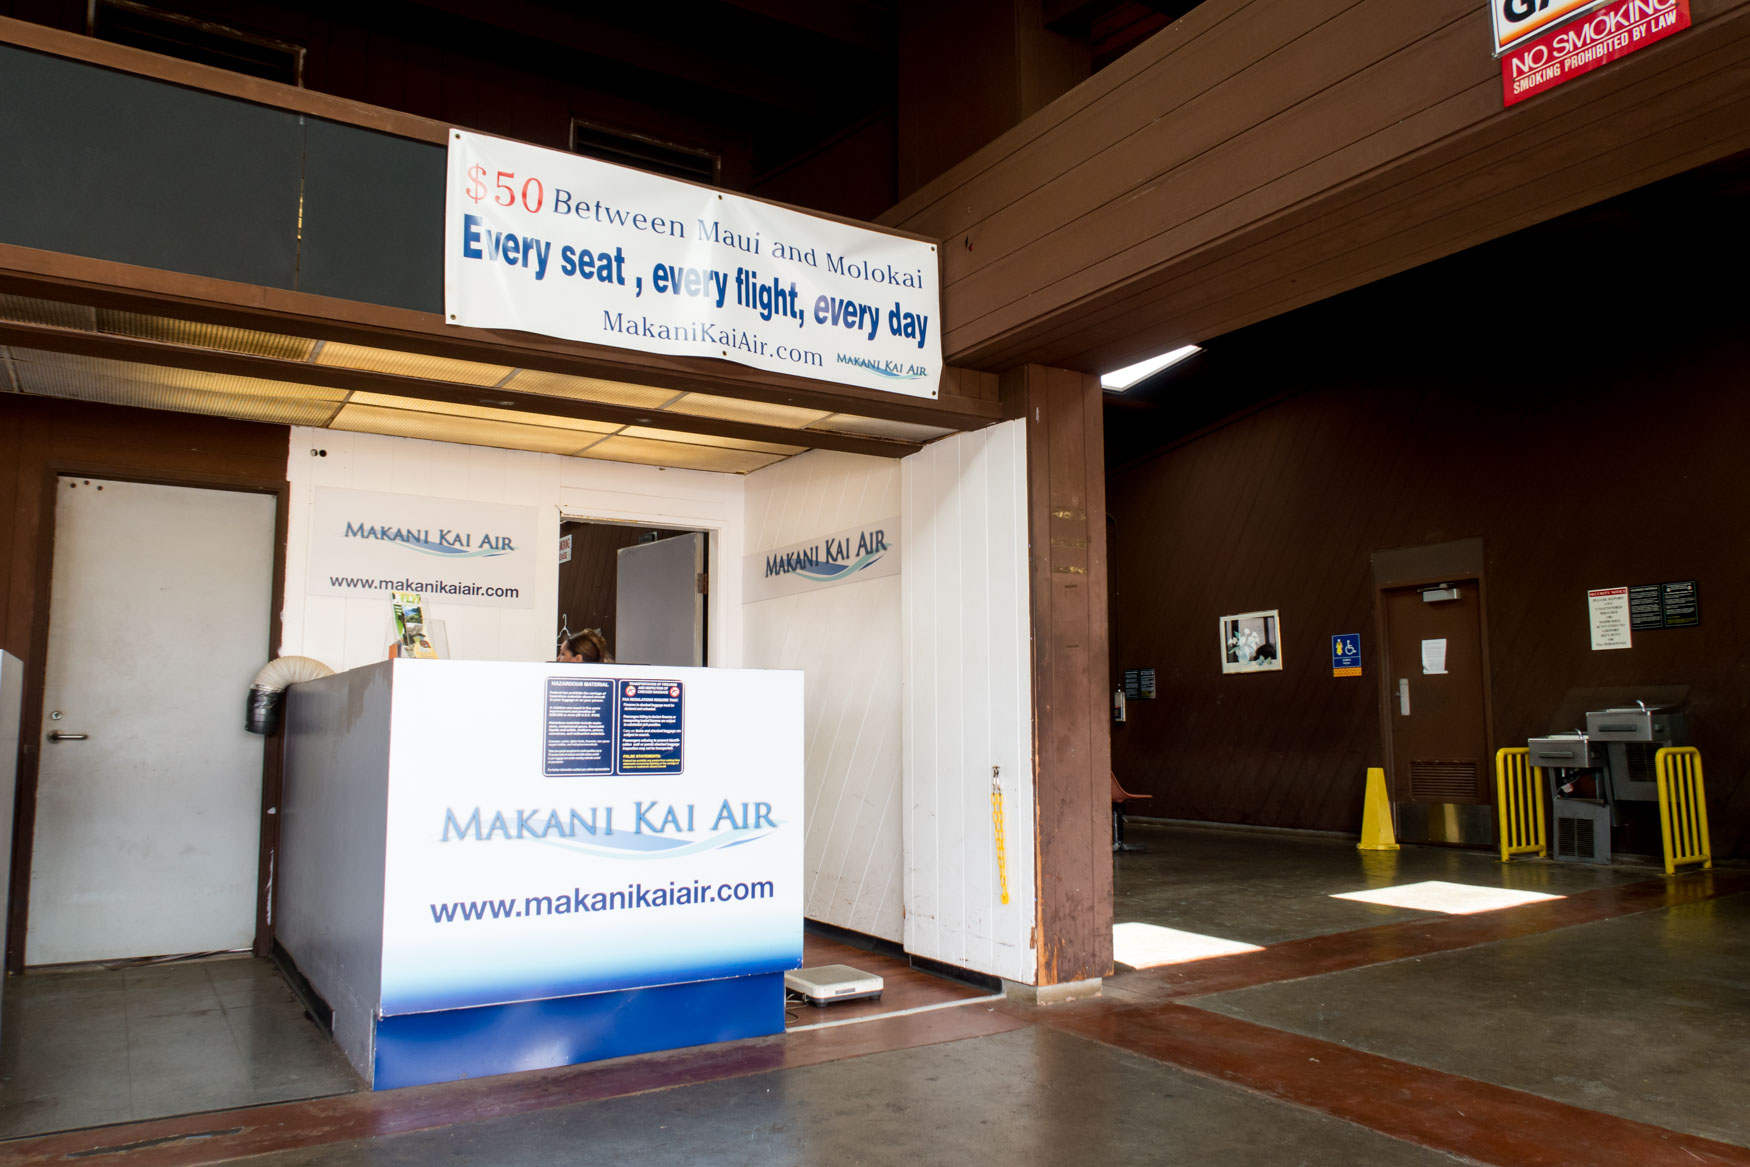 Makani Kai Air Check-In Counter